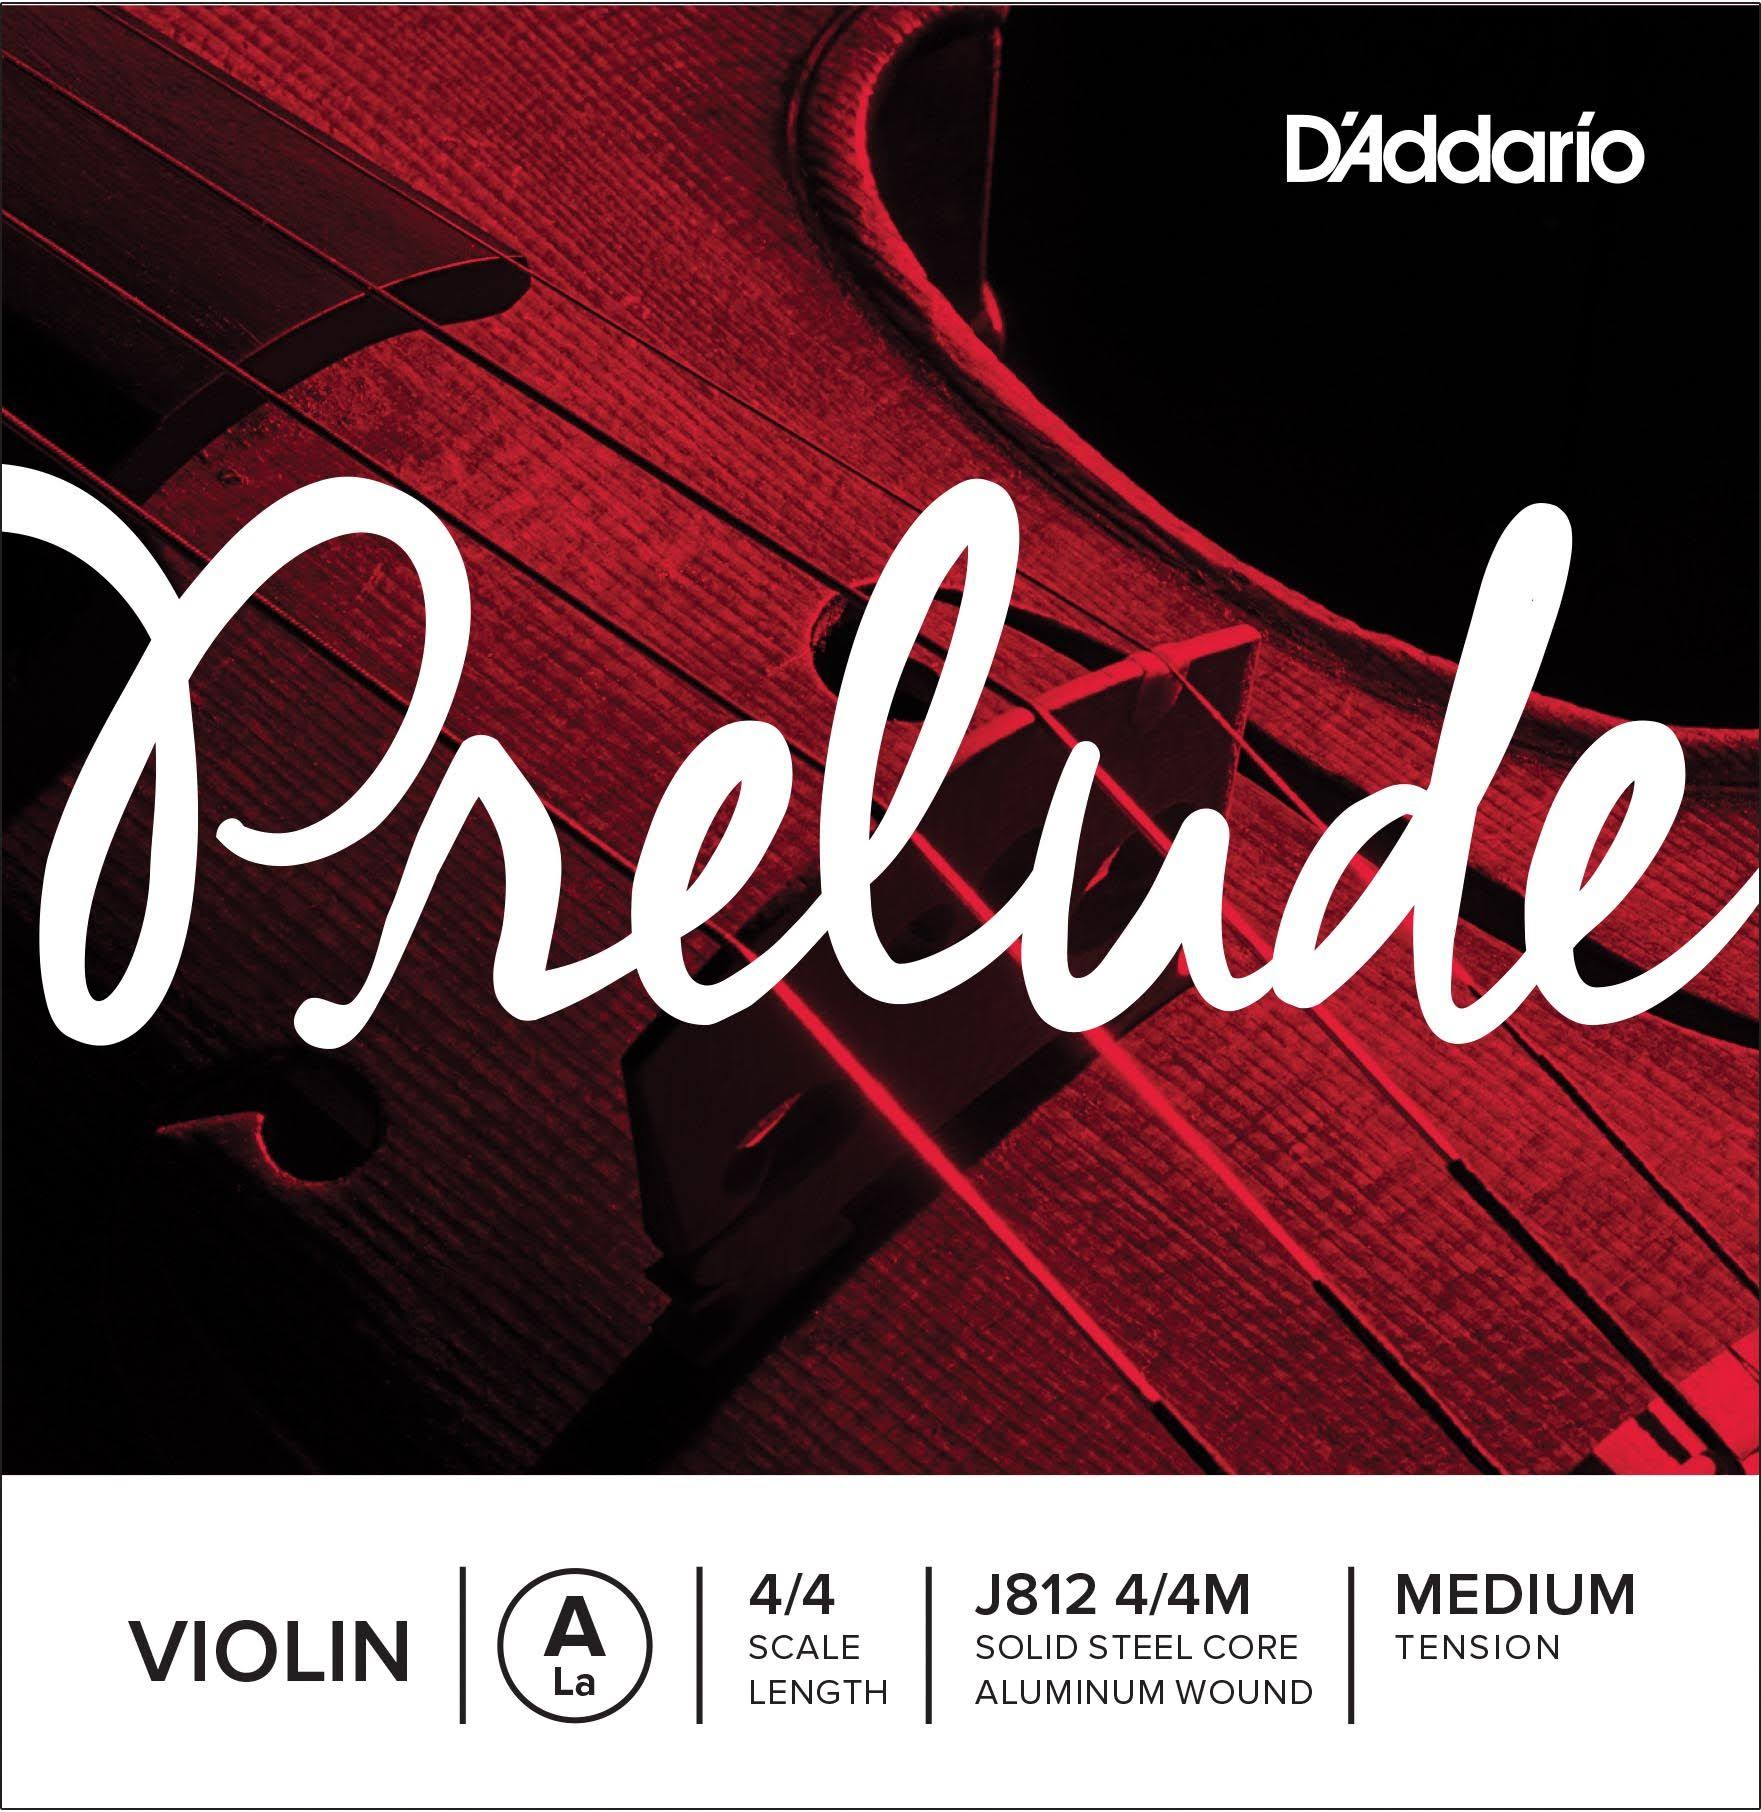 D'Addario J812 Prelude Violin A String Medium Scale 4/4